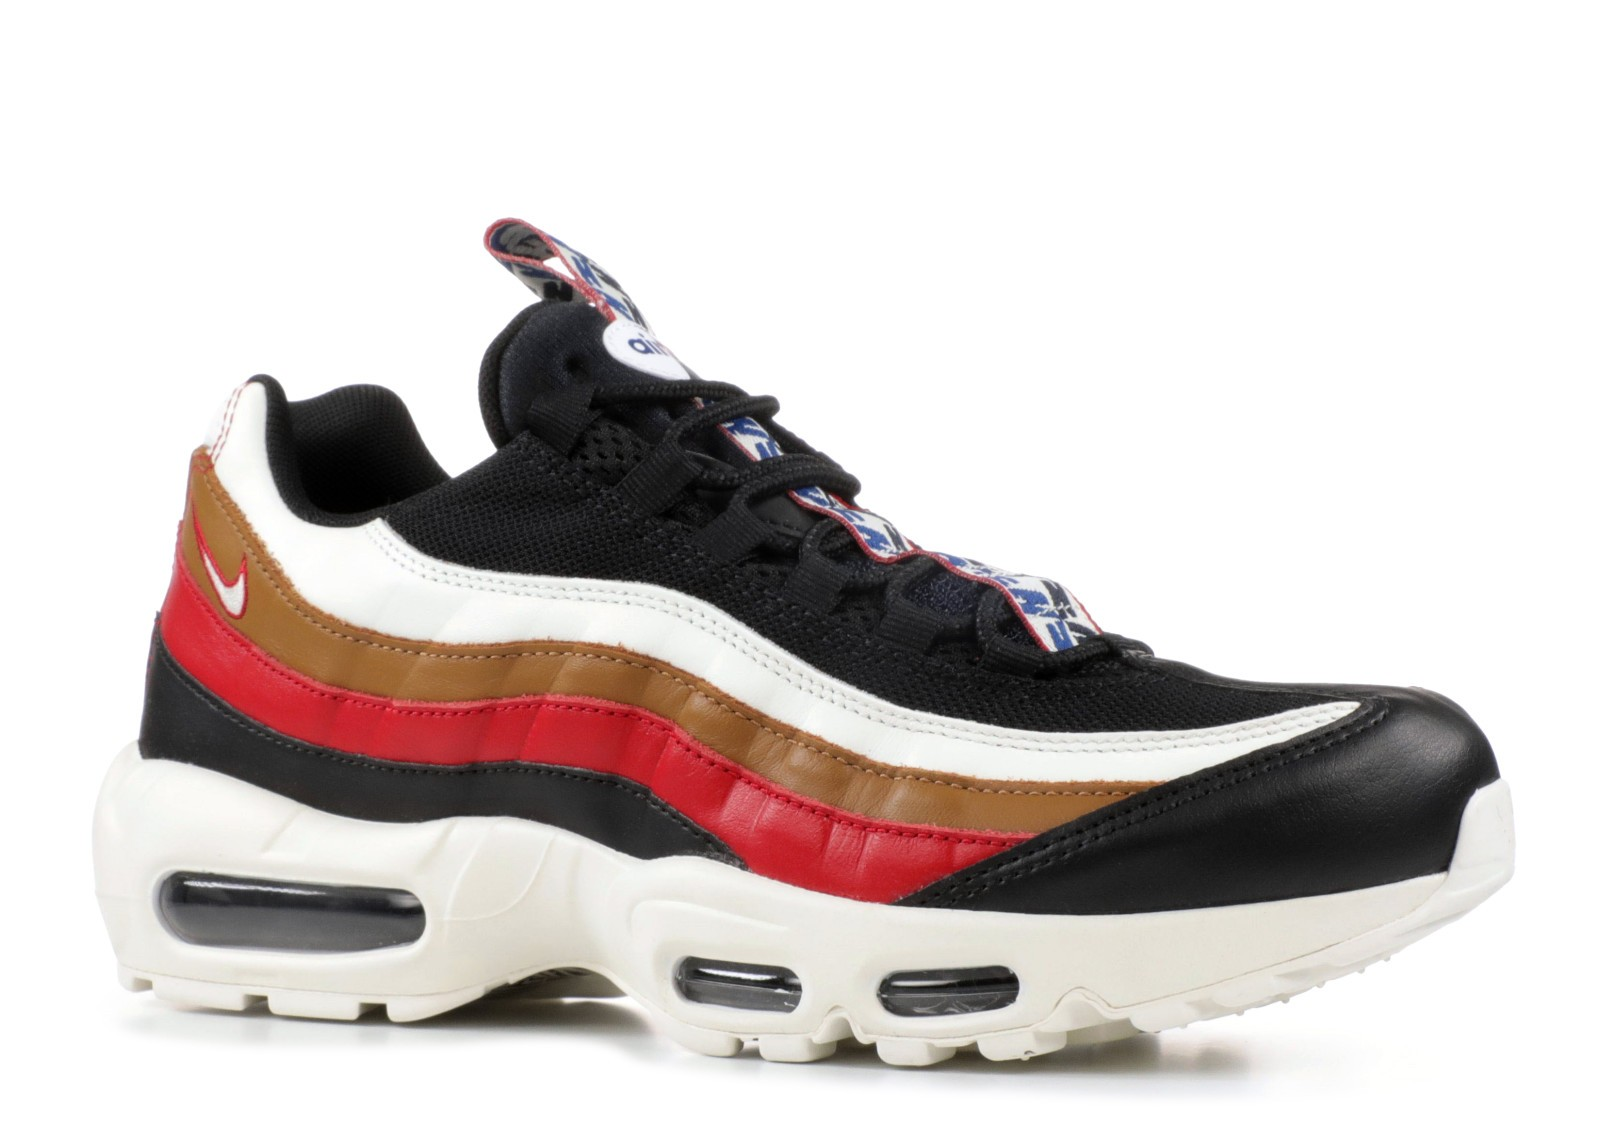 f32993a395 Nike Air Max 95 Tt Prm Pull Tab Brown Sail Gym Ale Black Red AJ4077- ...